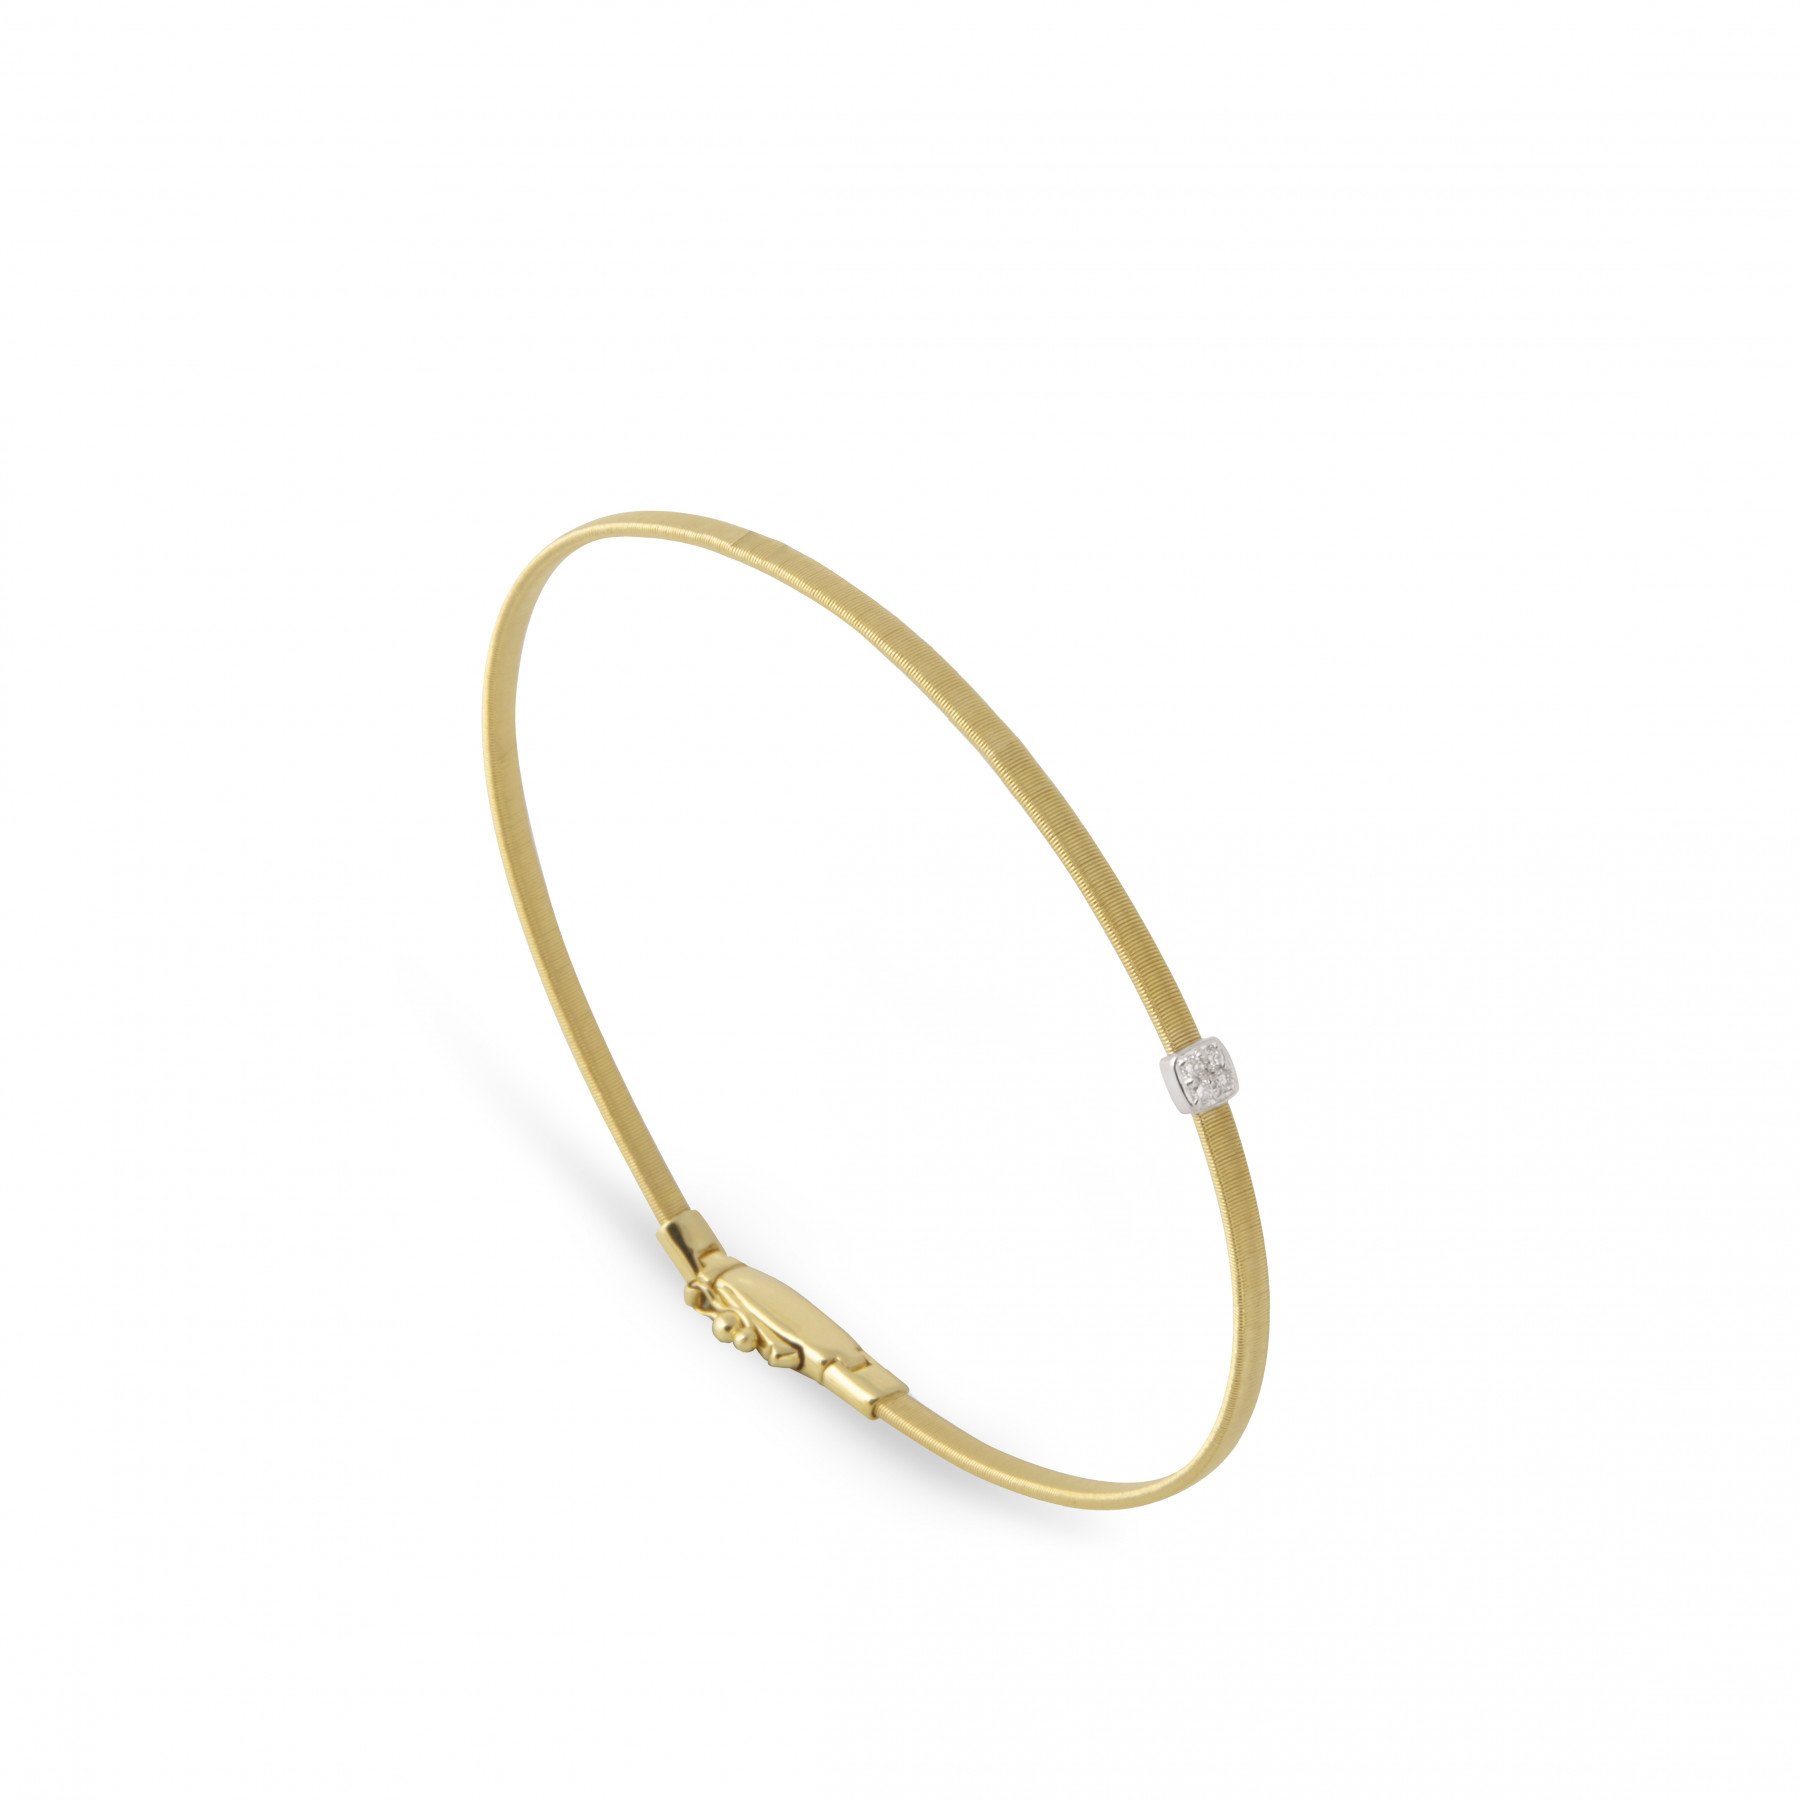 Marco Bicego Masai Single Diamond Station Bangle